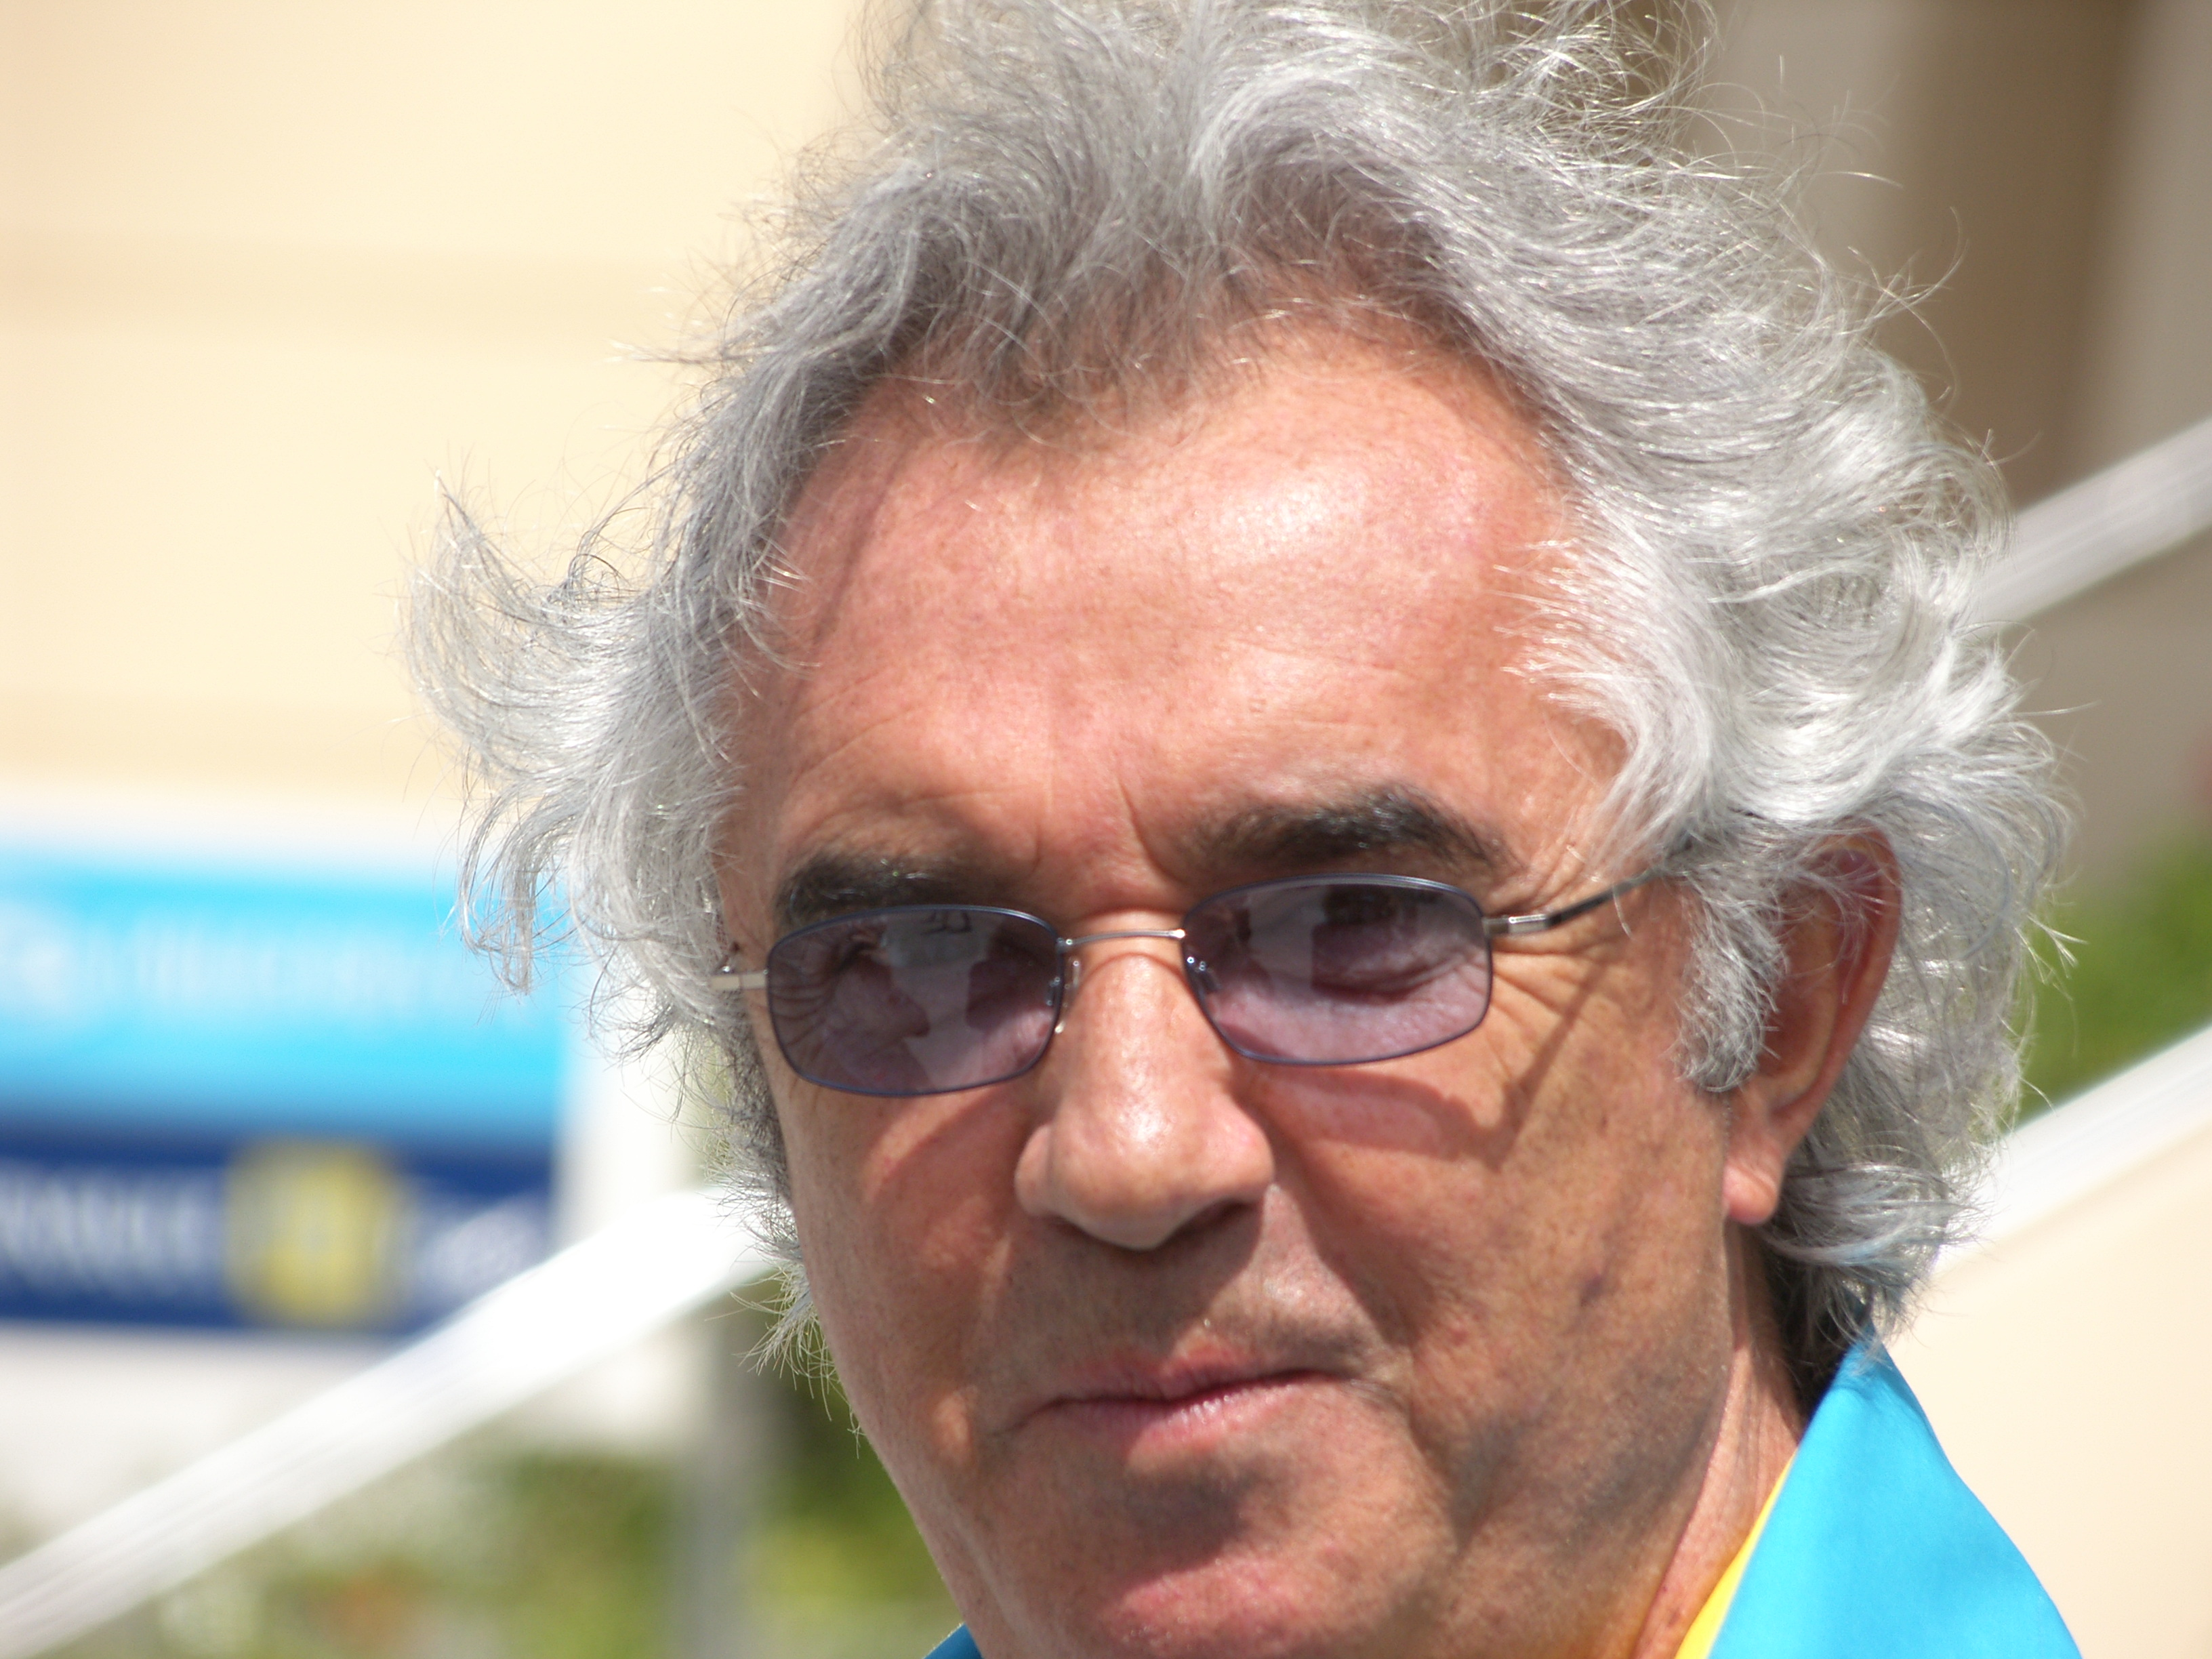 https://i1.wp.com/upload.wikimedia.org/wikipedia/commons/8/8a/Flavio_Briatore.JPG